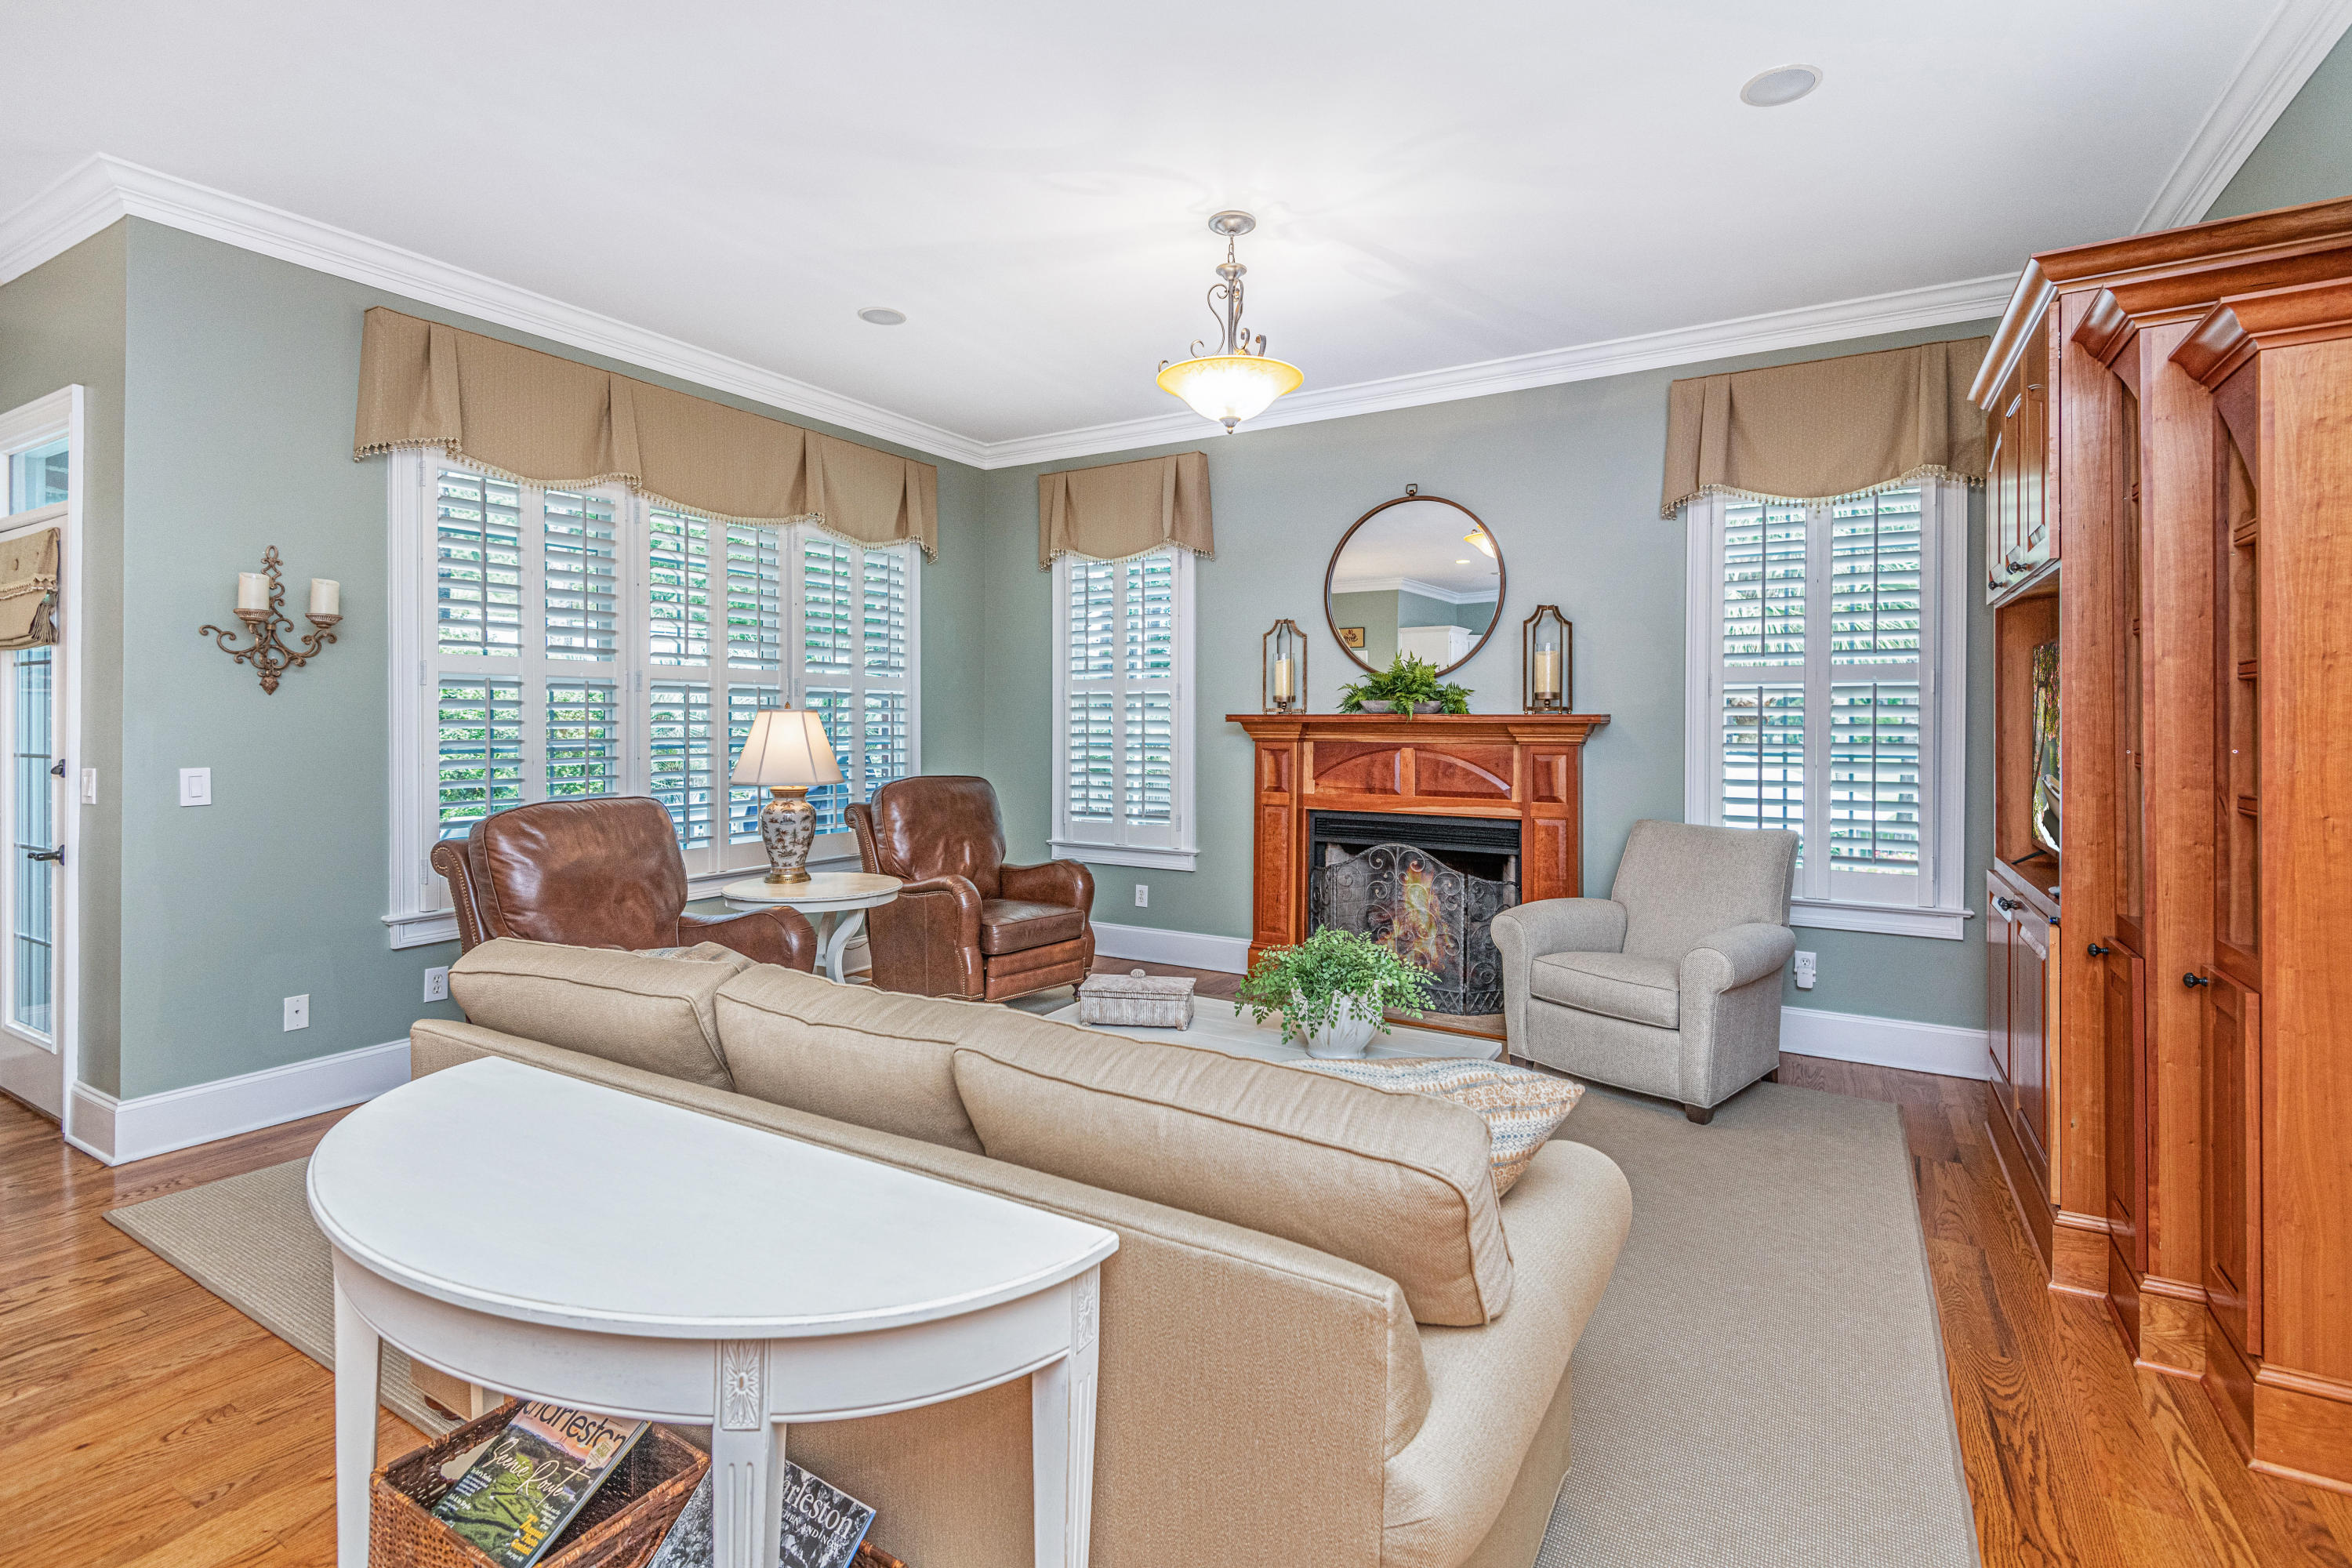 Dunes West Homes For Sale - 1837 Shell Ring, Mount Pleasant, SC - 19